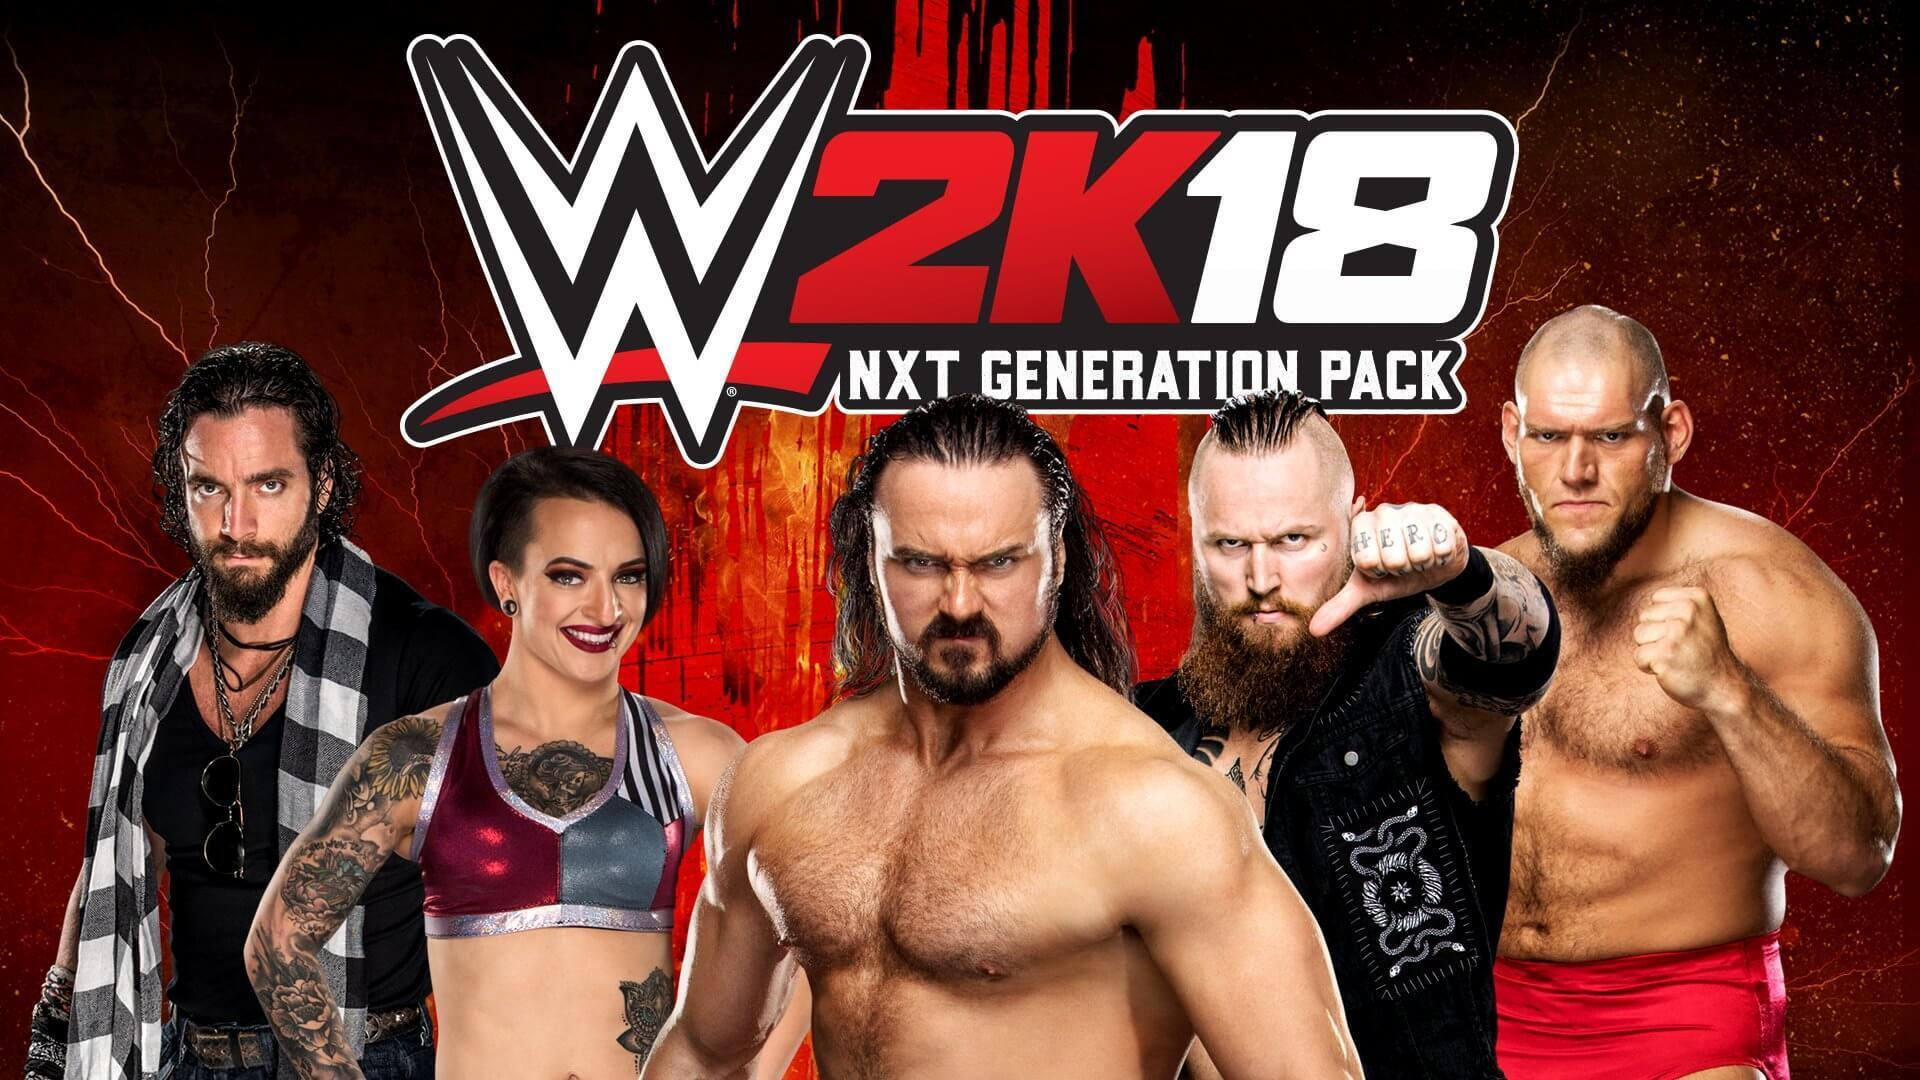 WWE 2K18 NXT Generation Pack DLC Now Available